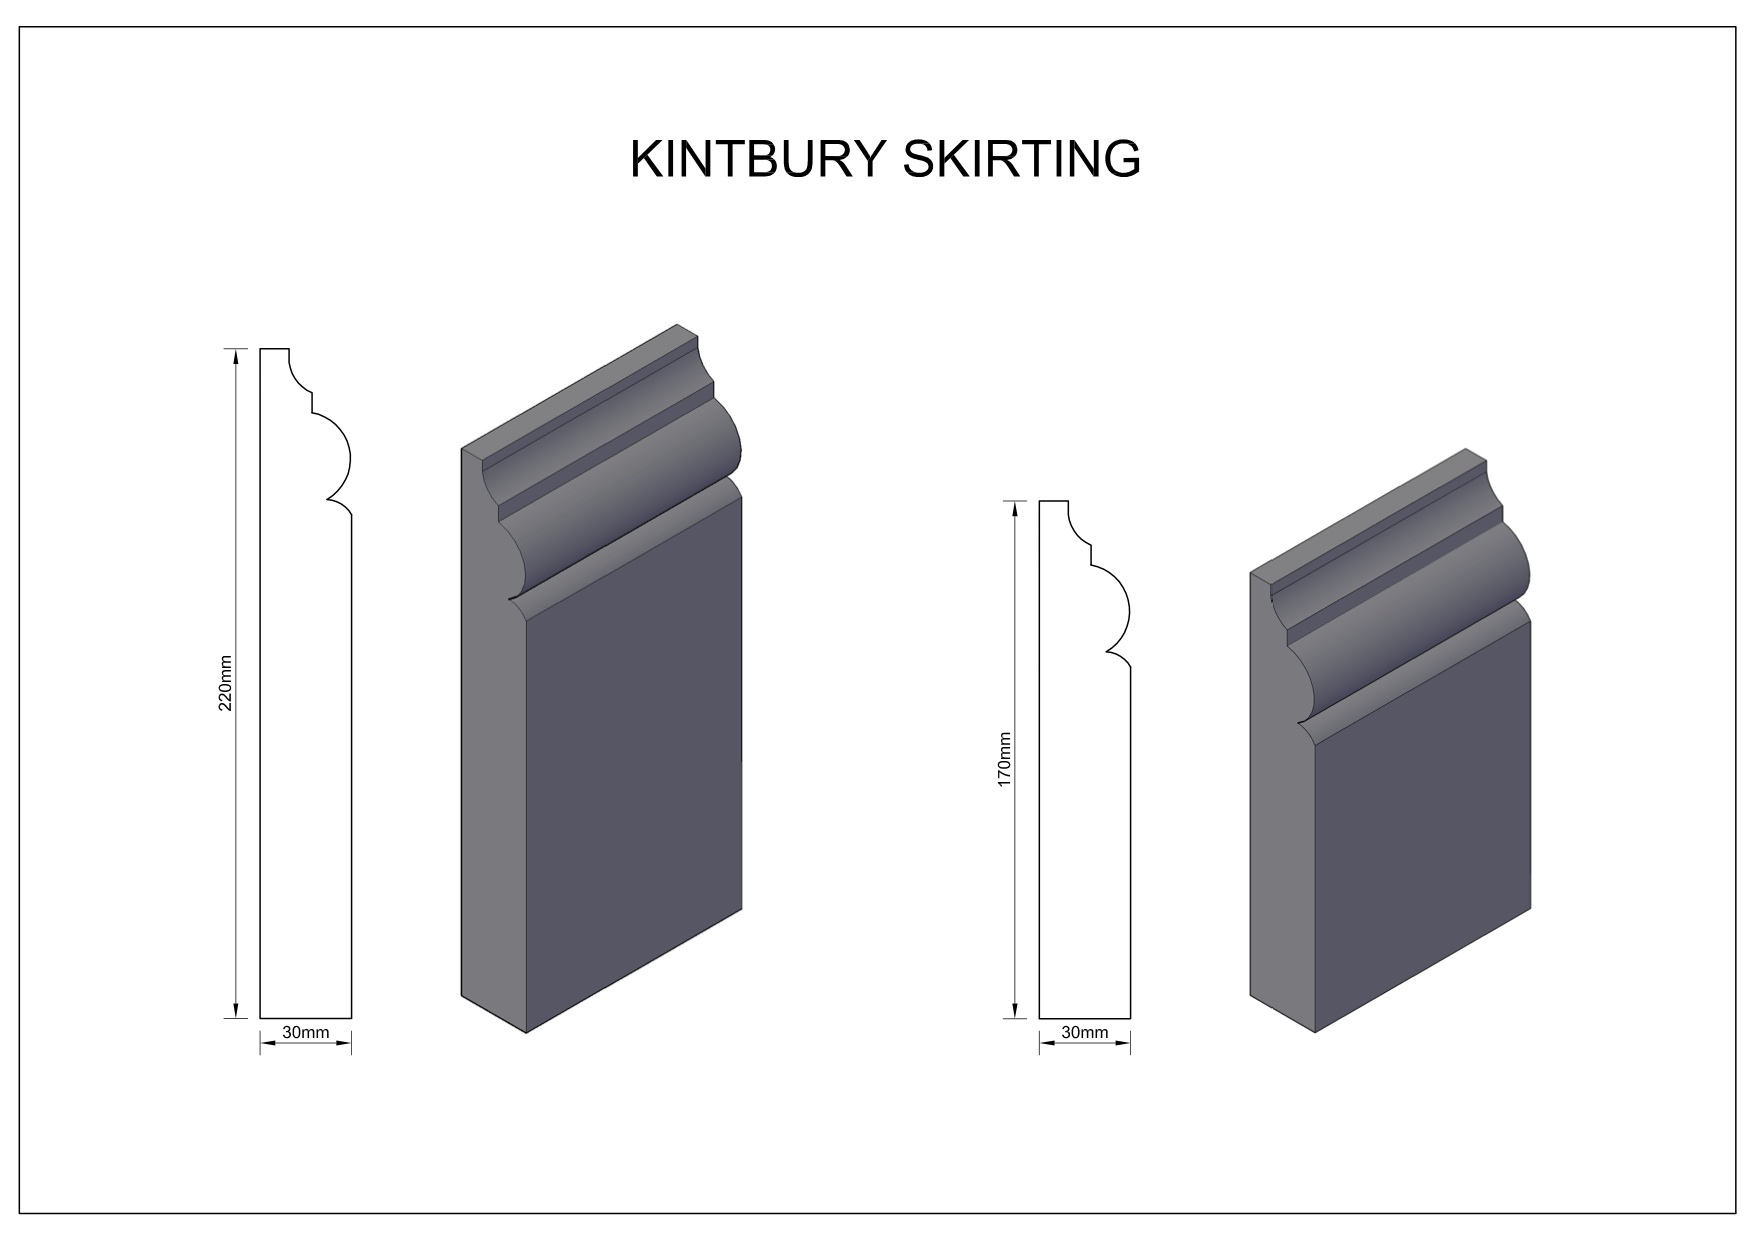 Kintbury-skirting large